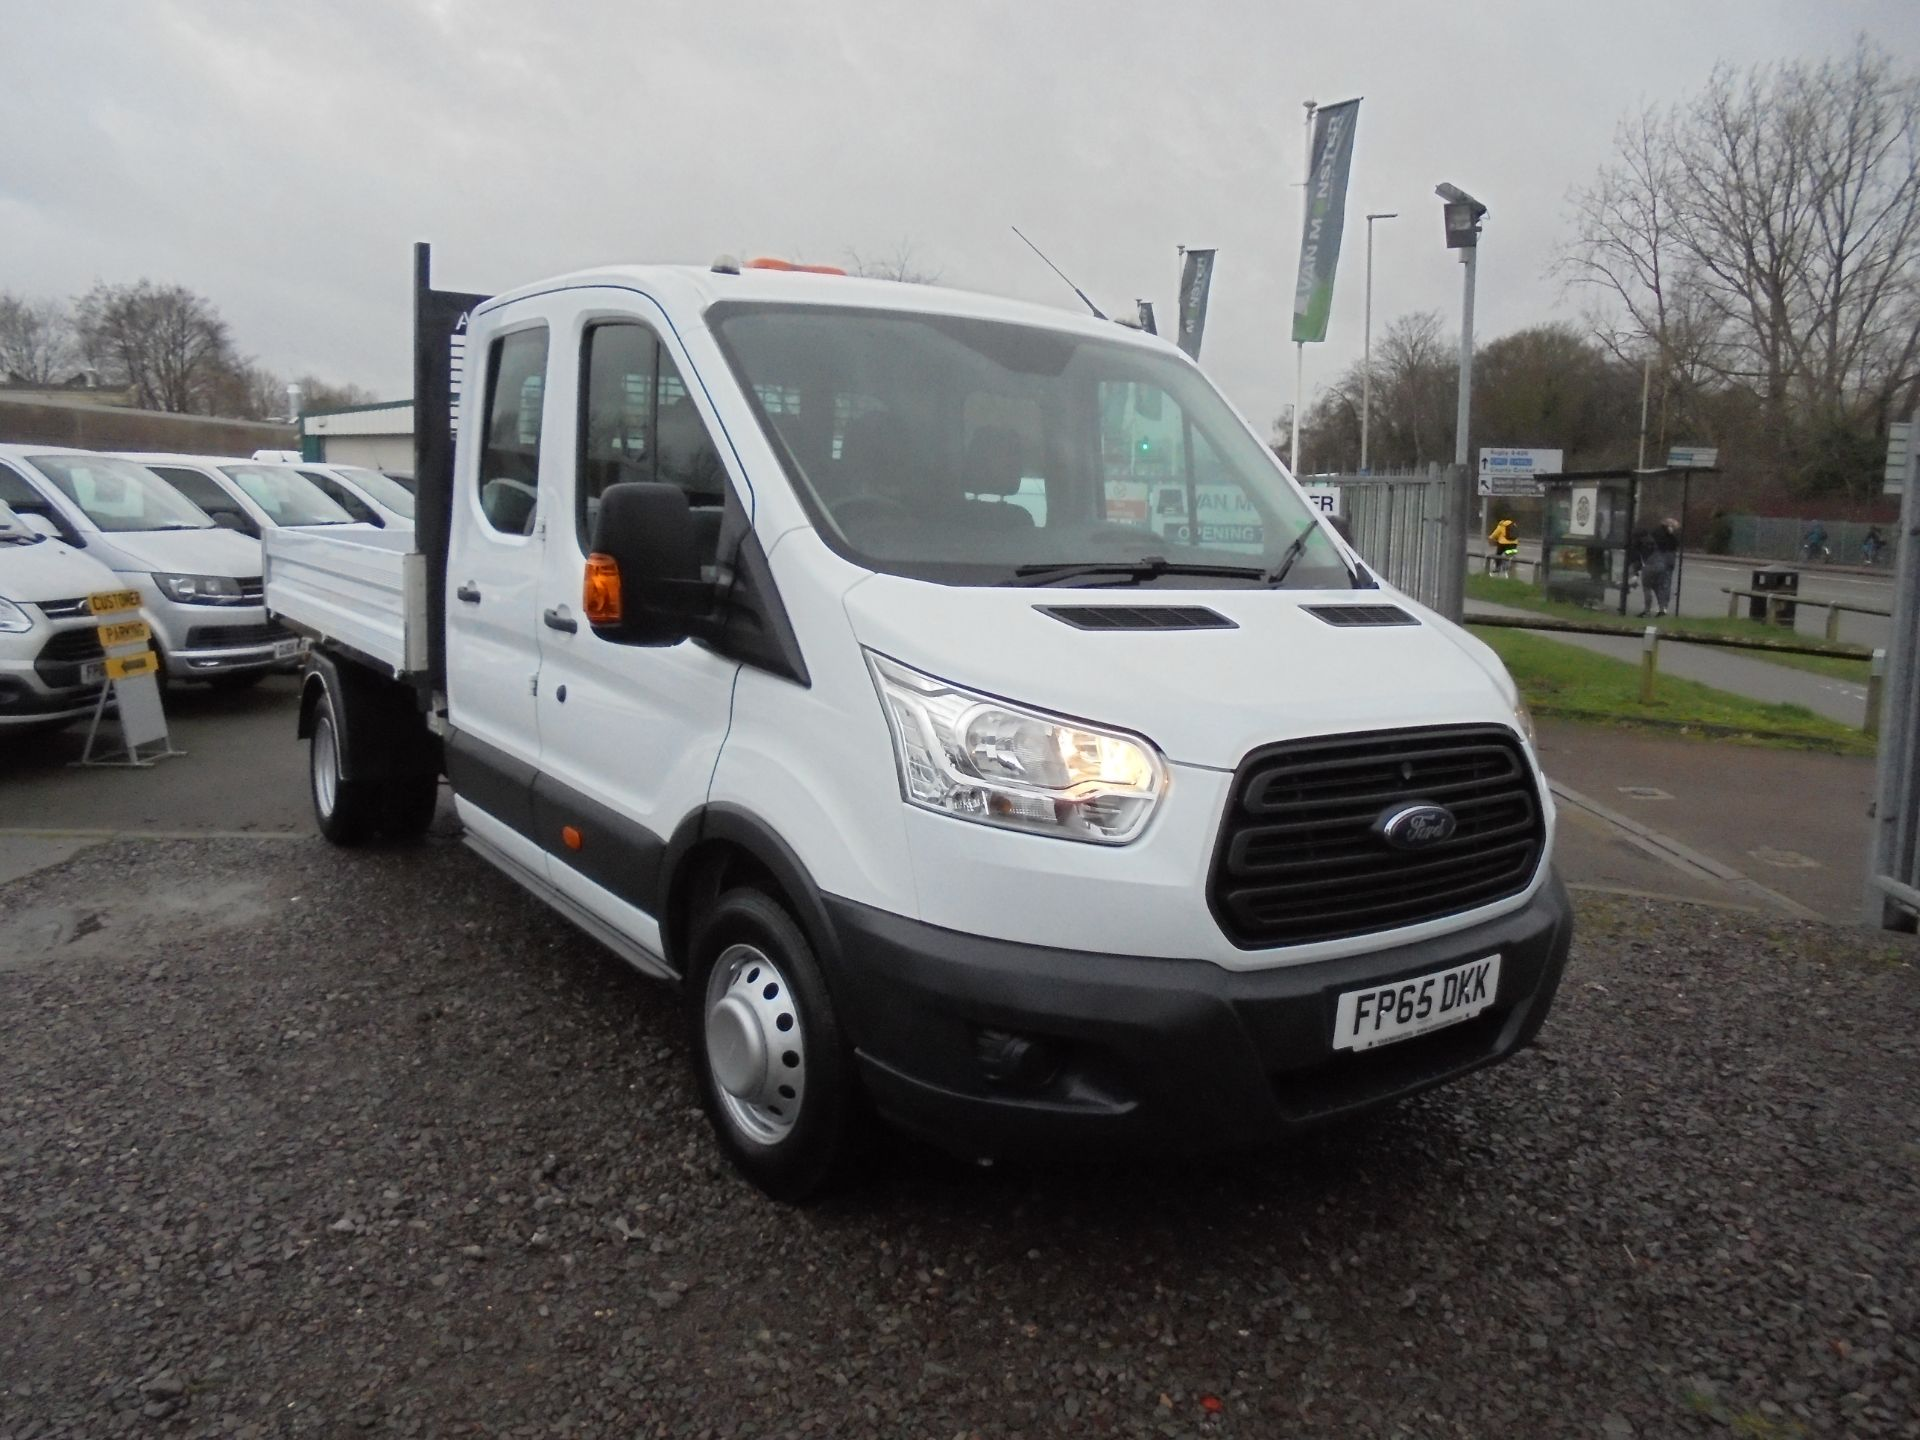 2016 Ford Transit 350 L3 DOUBLE CAB TIPPER 125PS EURO 5 (FP65DKK)